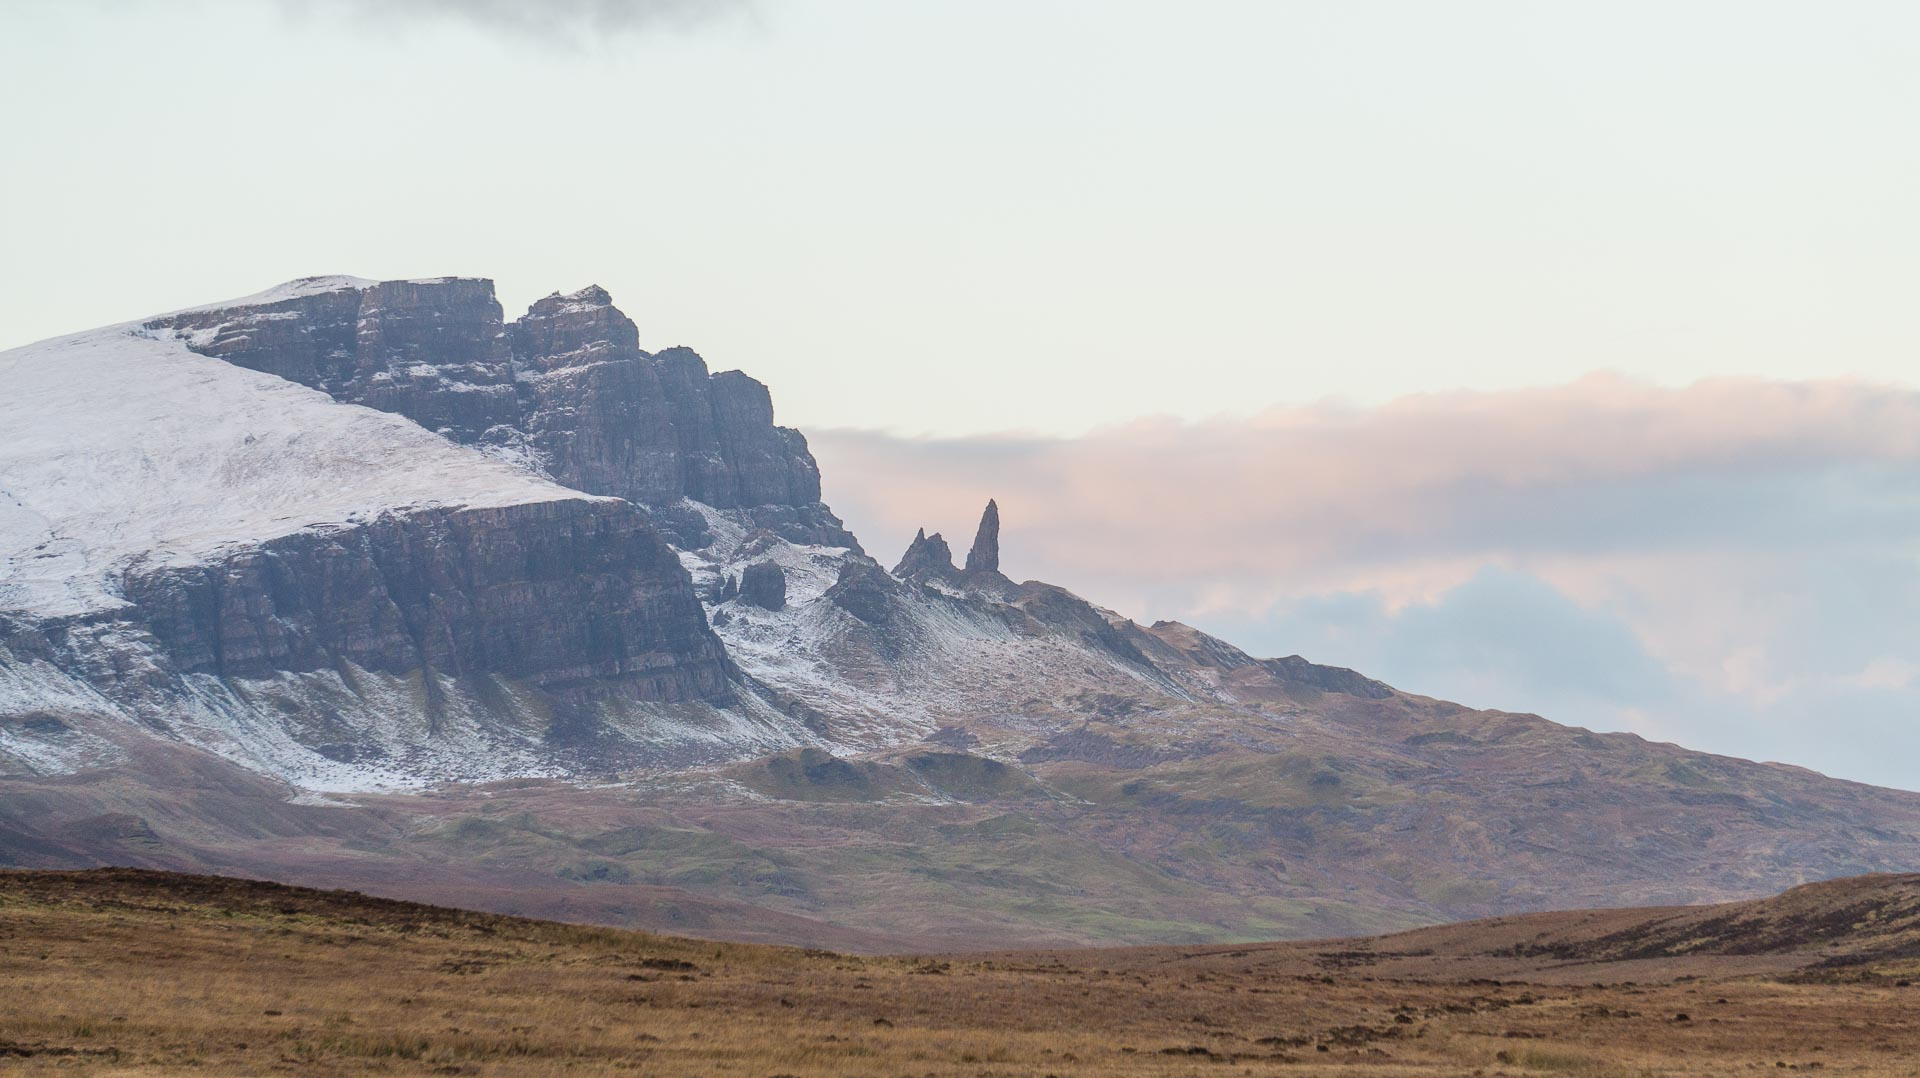 Skye Island: What to do on the Isle of Skye, Scotland